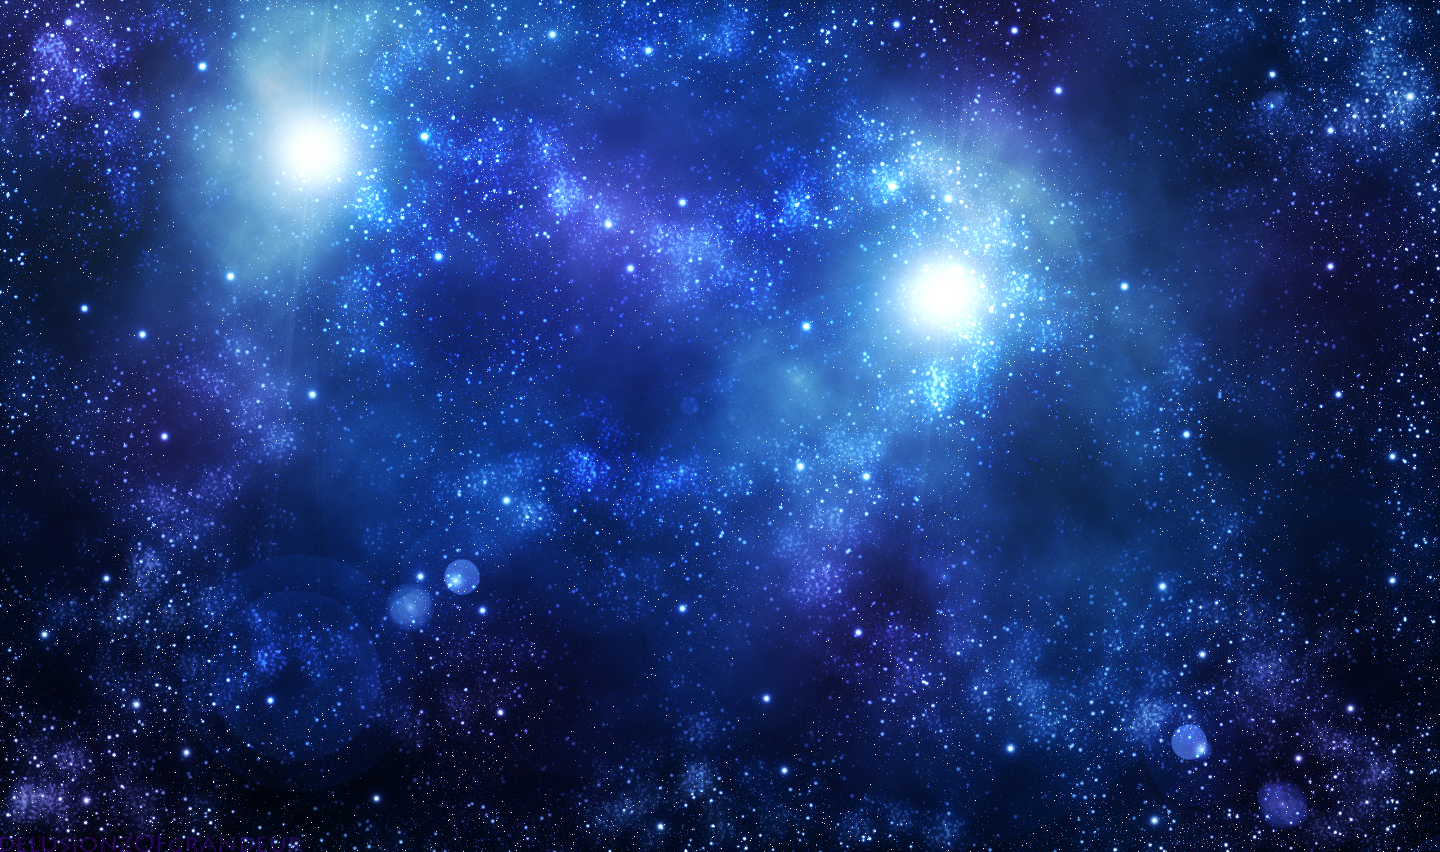 galaxy wallpaper 1080p  HD Photo Wallpaper Collection HD WALLPAPERS 1440x852